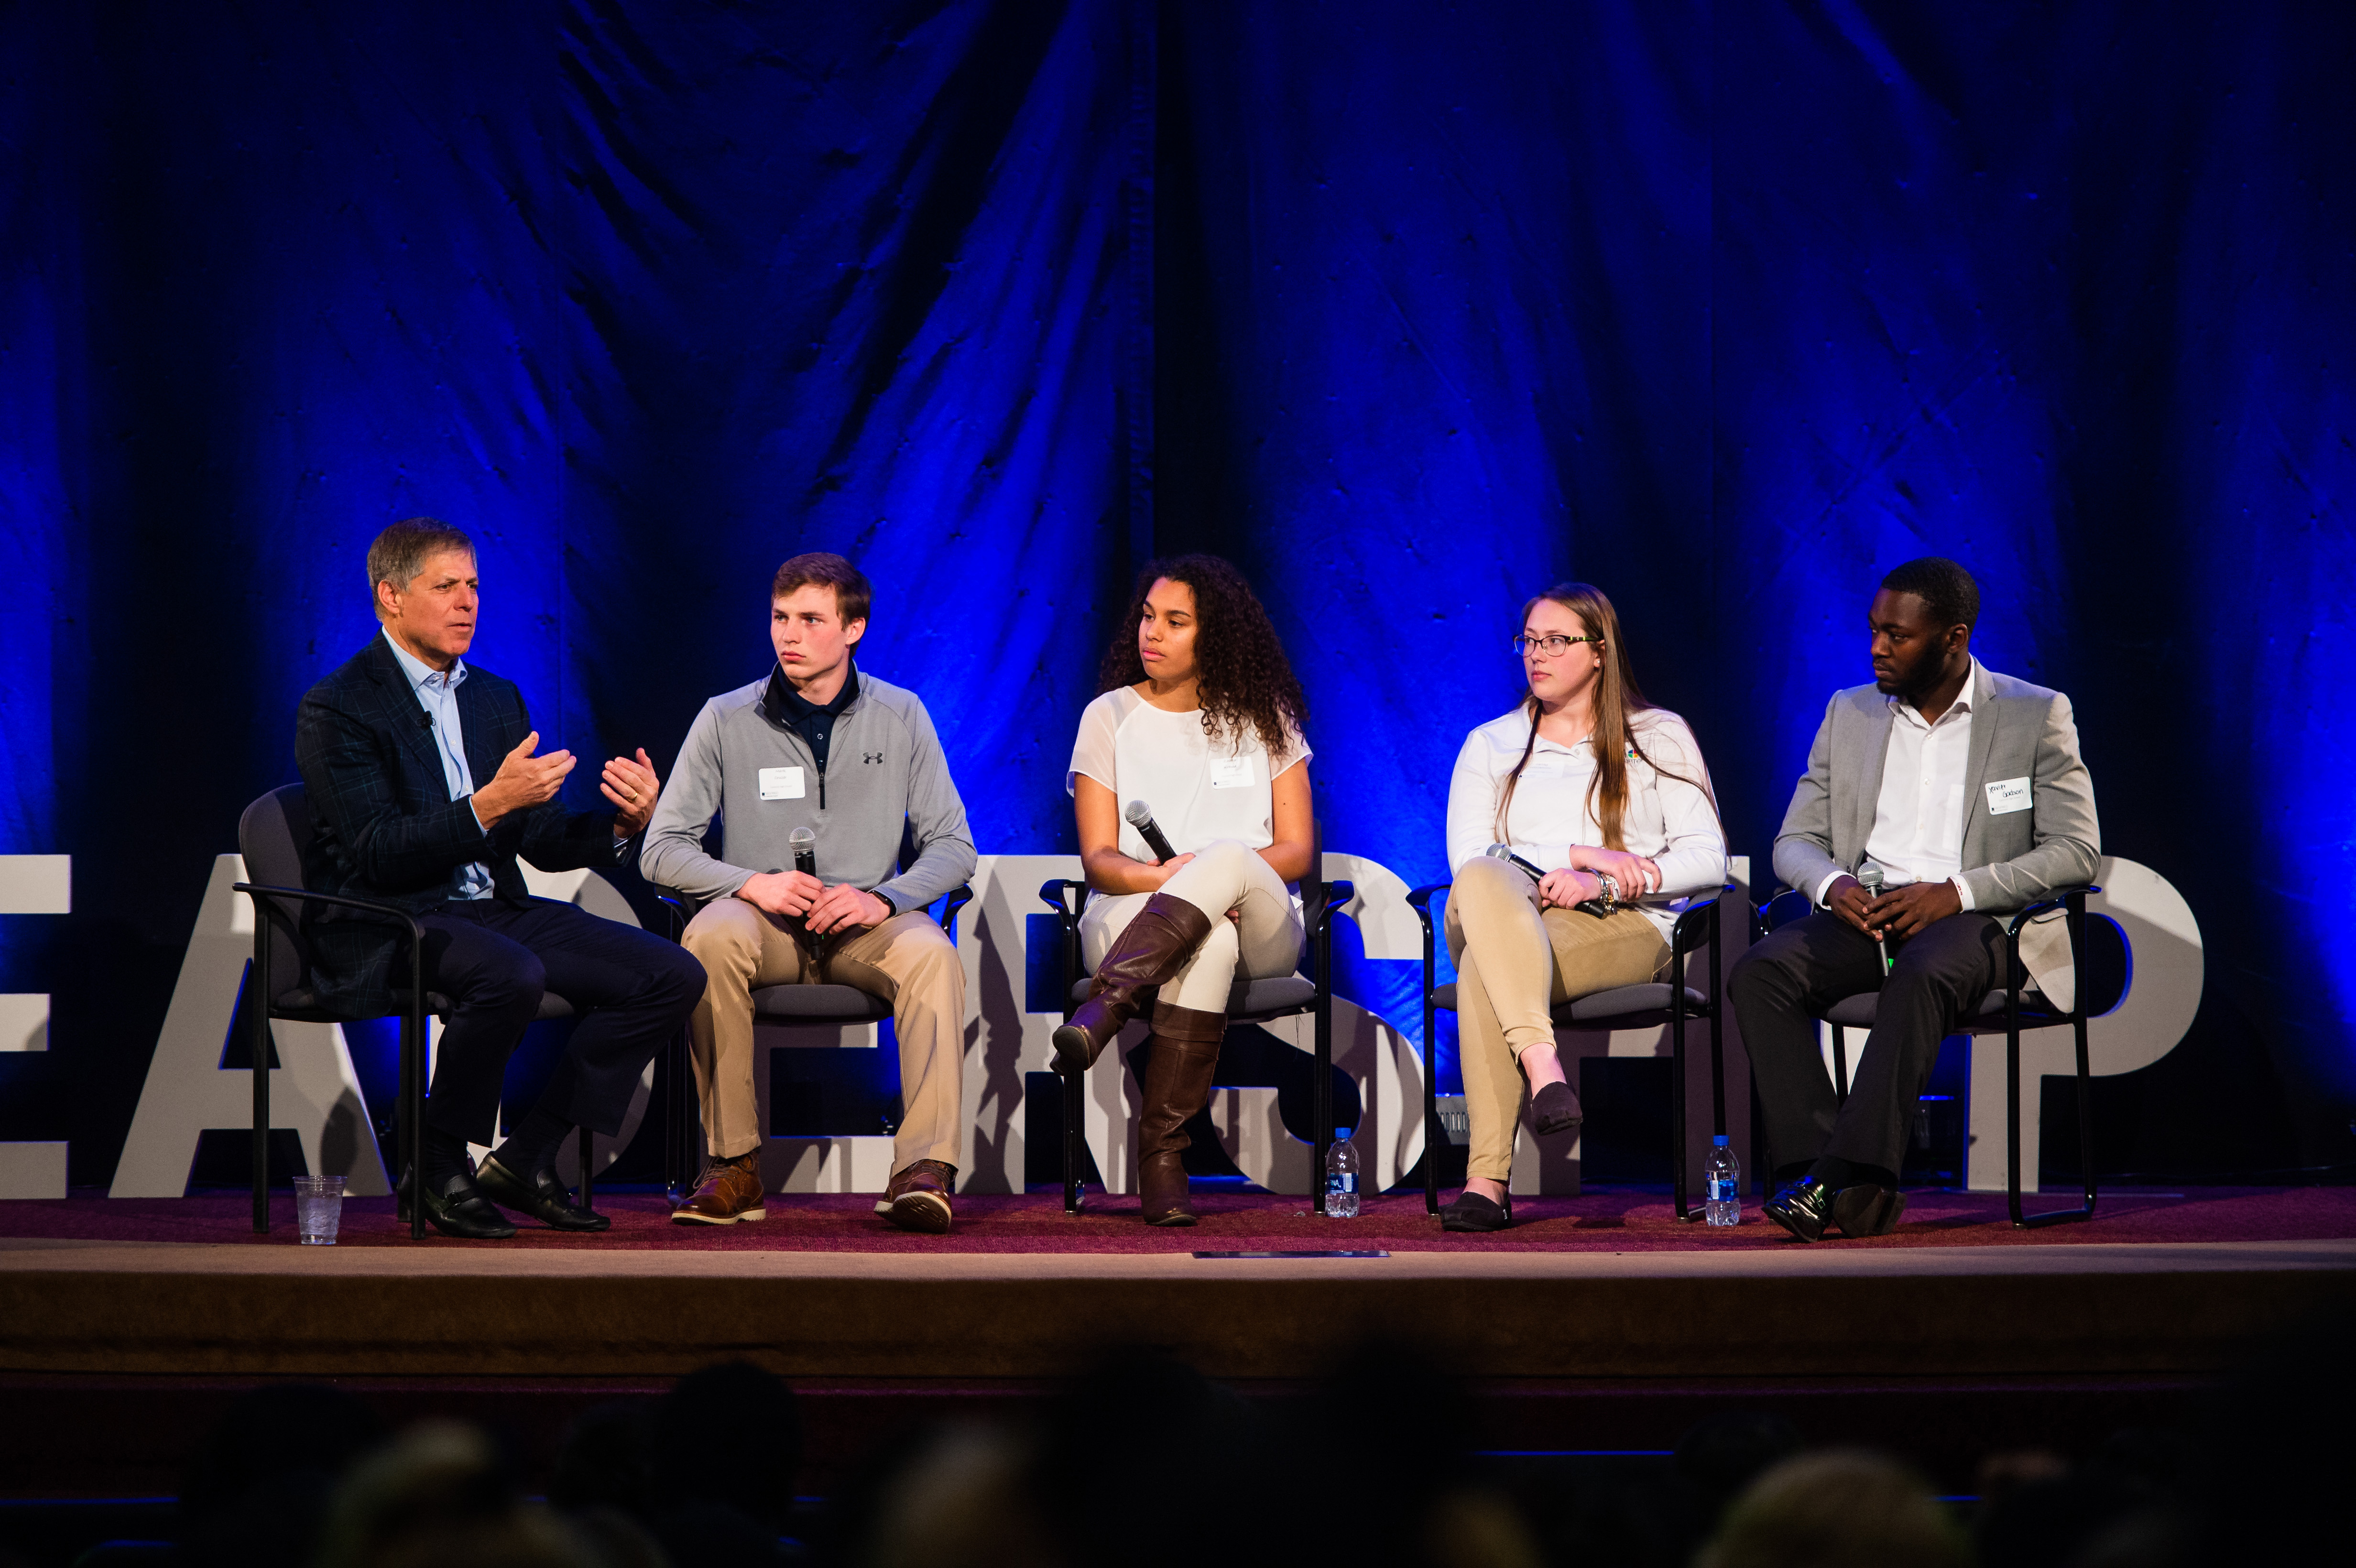 Lerner alumnus teaches leadership to Delaware youth